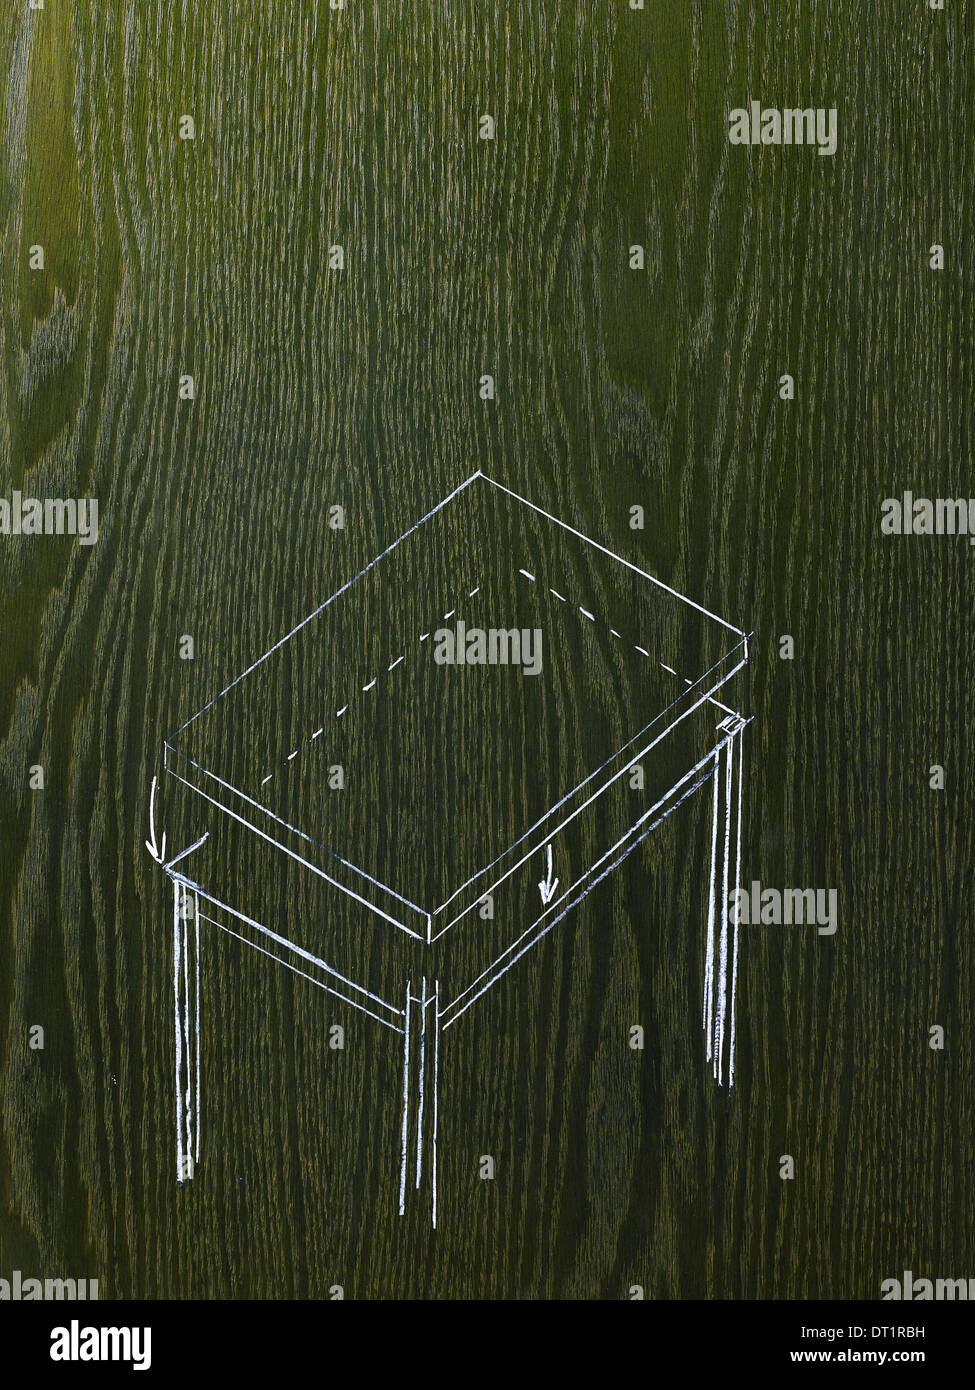 A line drawing image on a natural wood grain background A rectangular table with a detached top - Stock Image